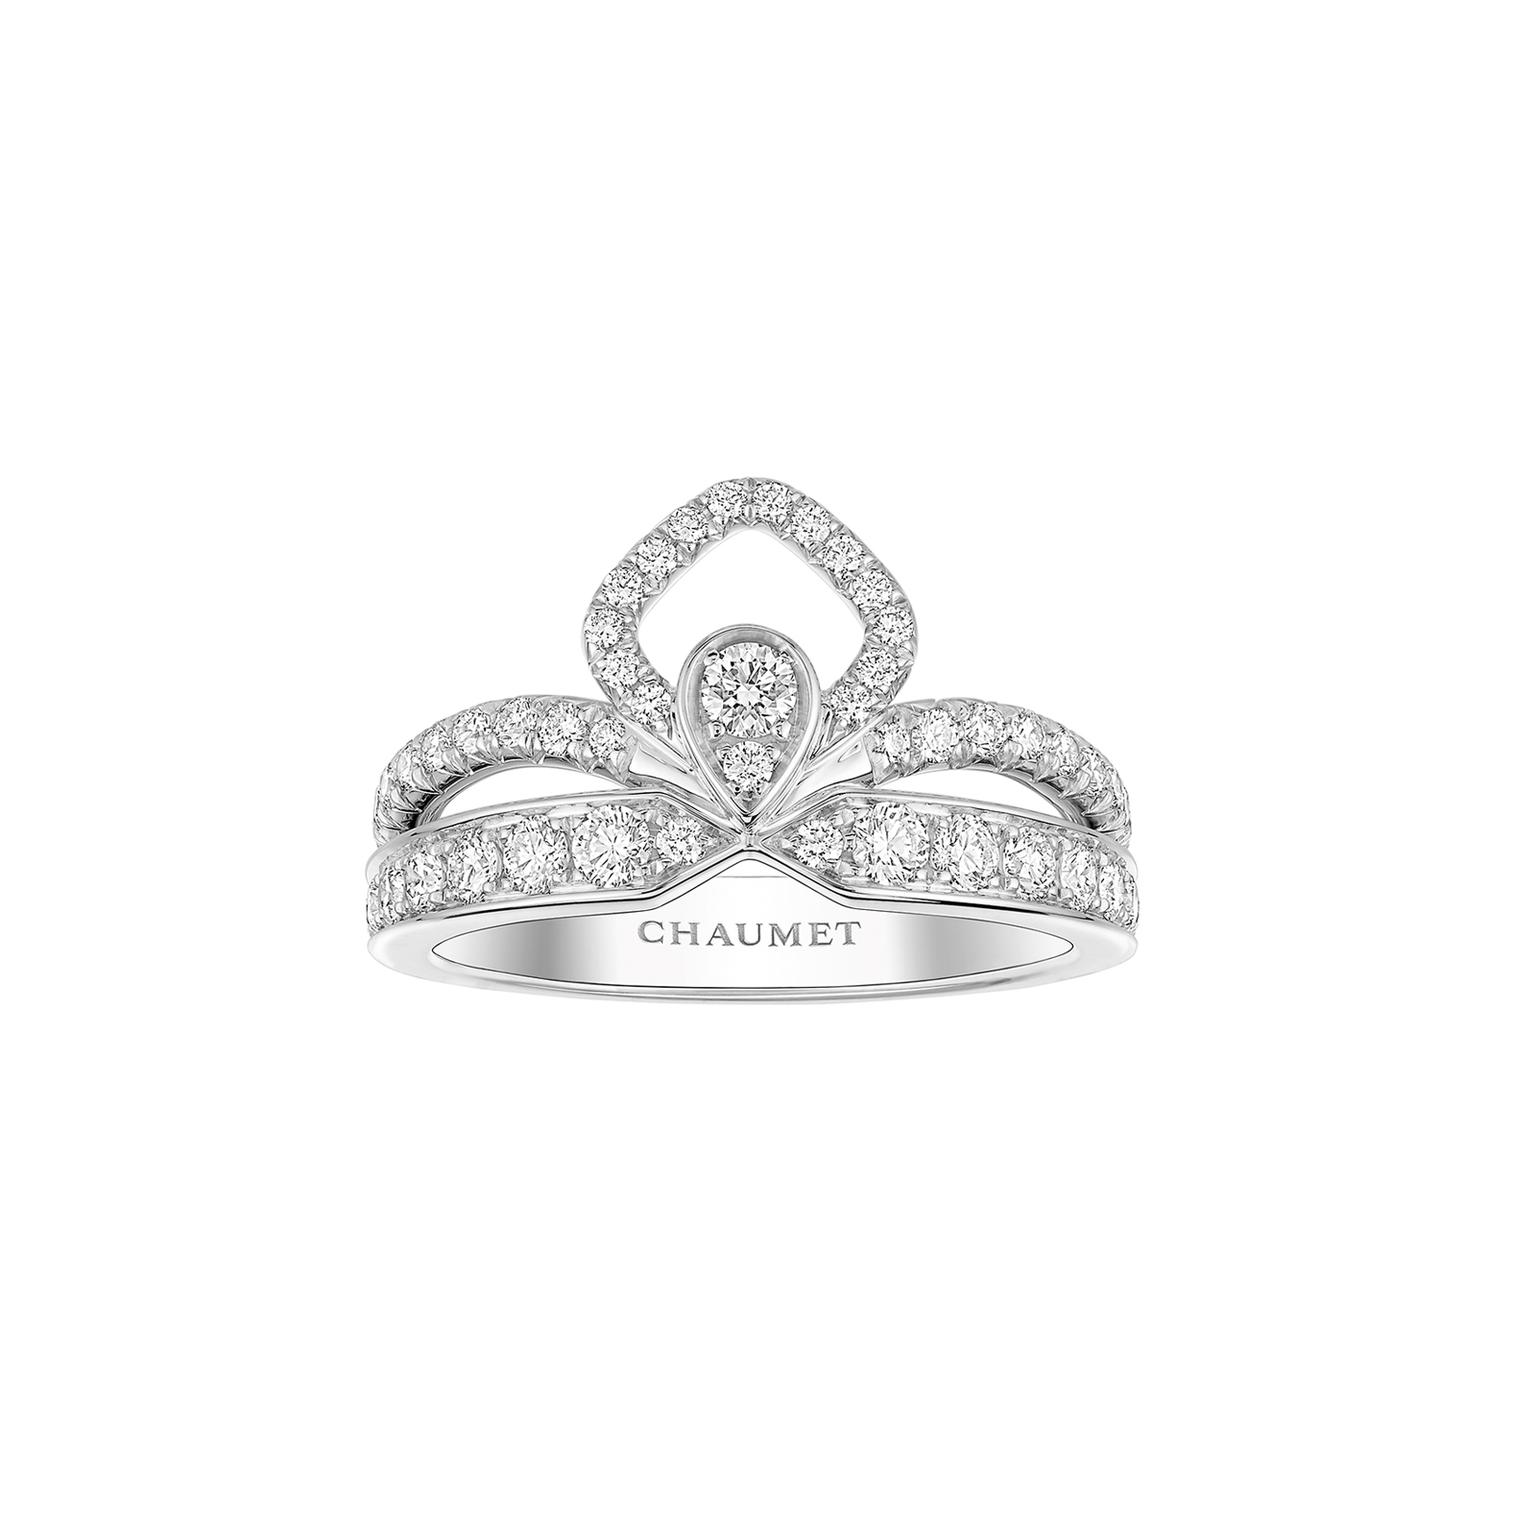 Chaumet Josephine white gold ring